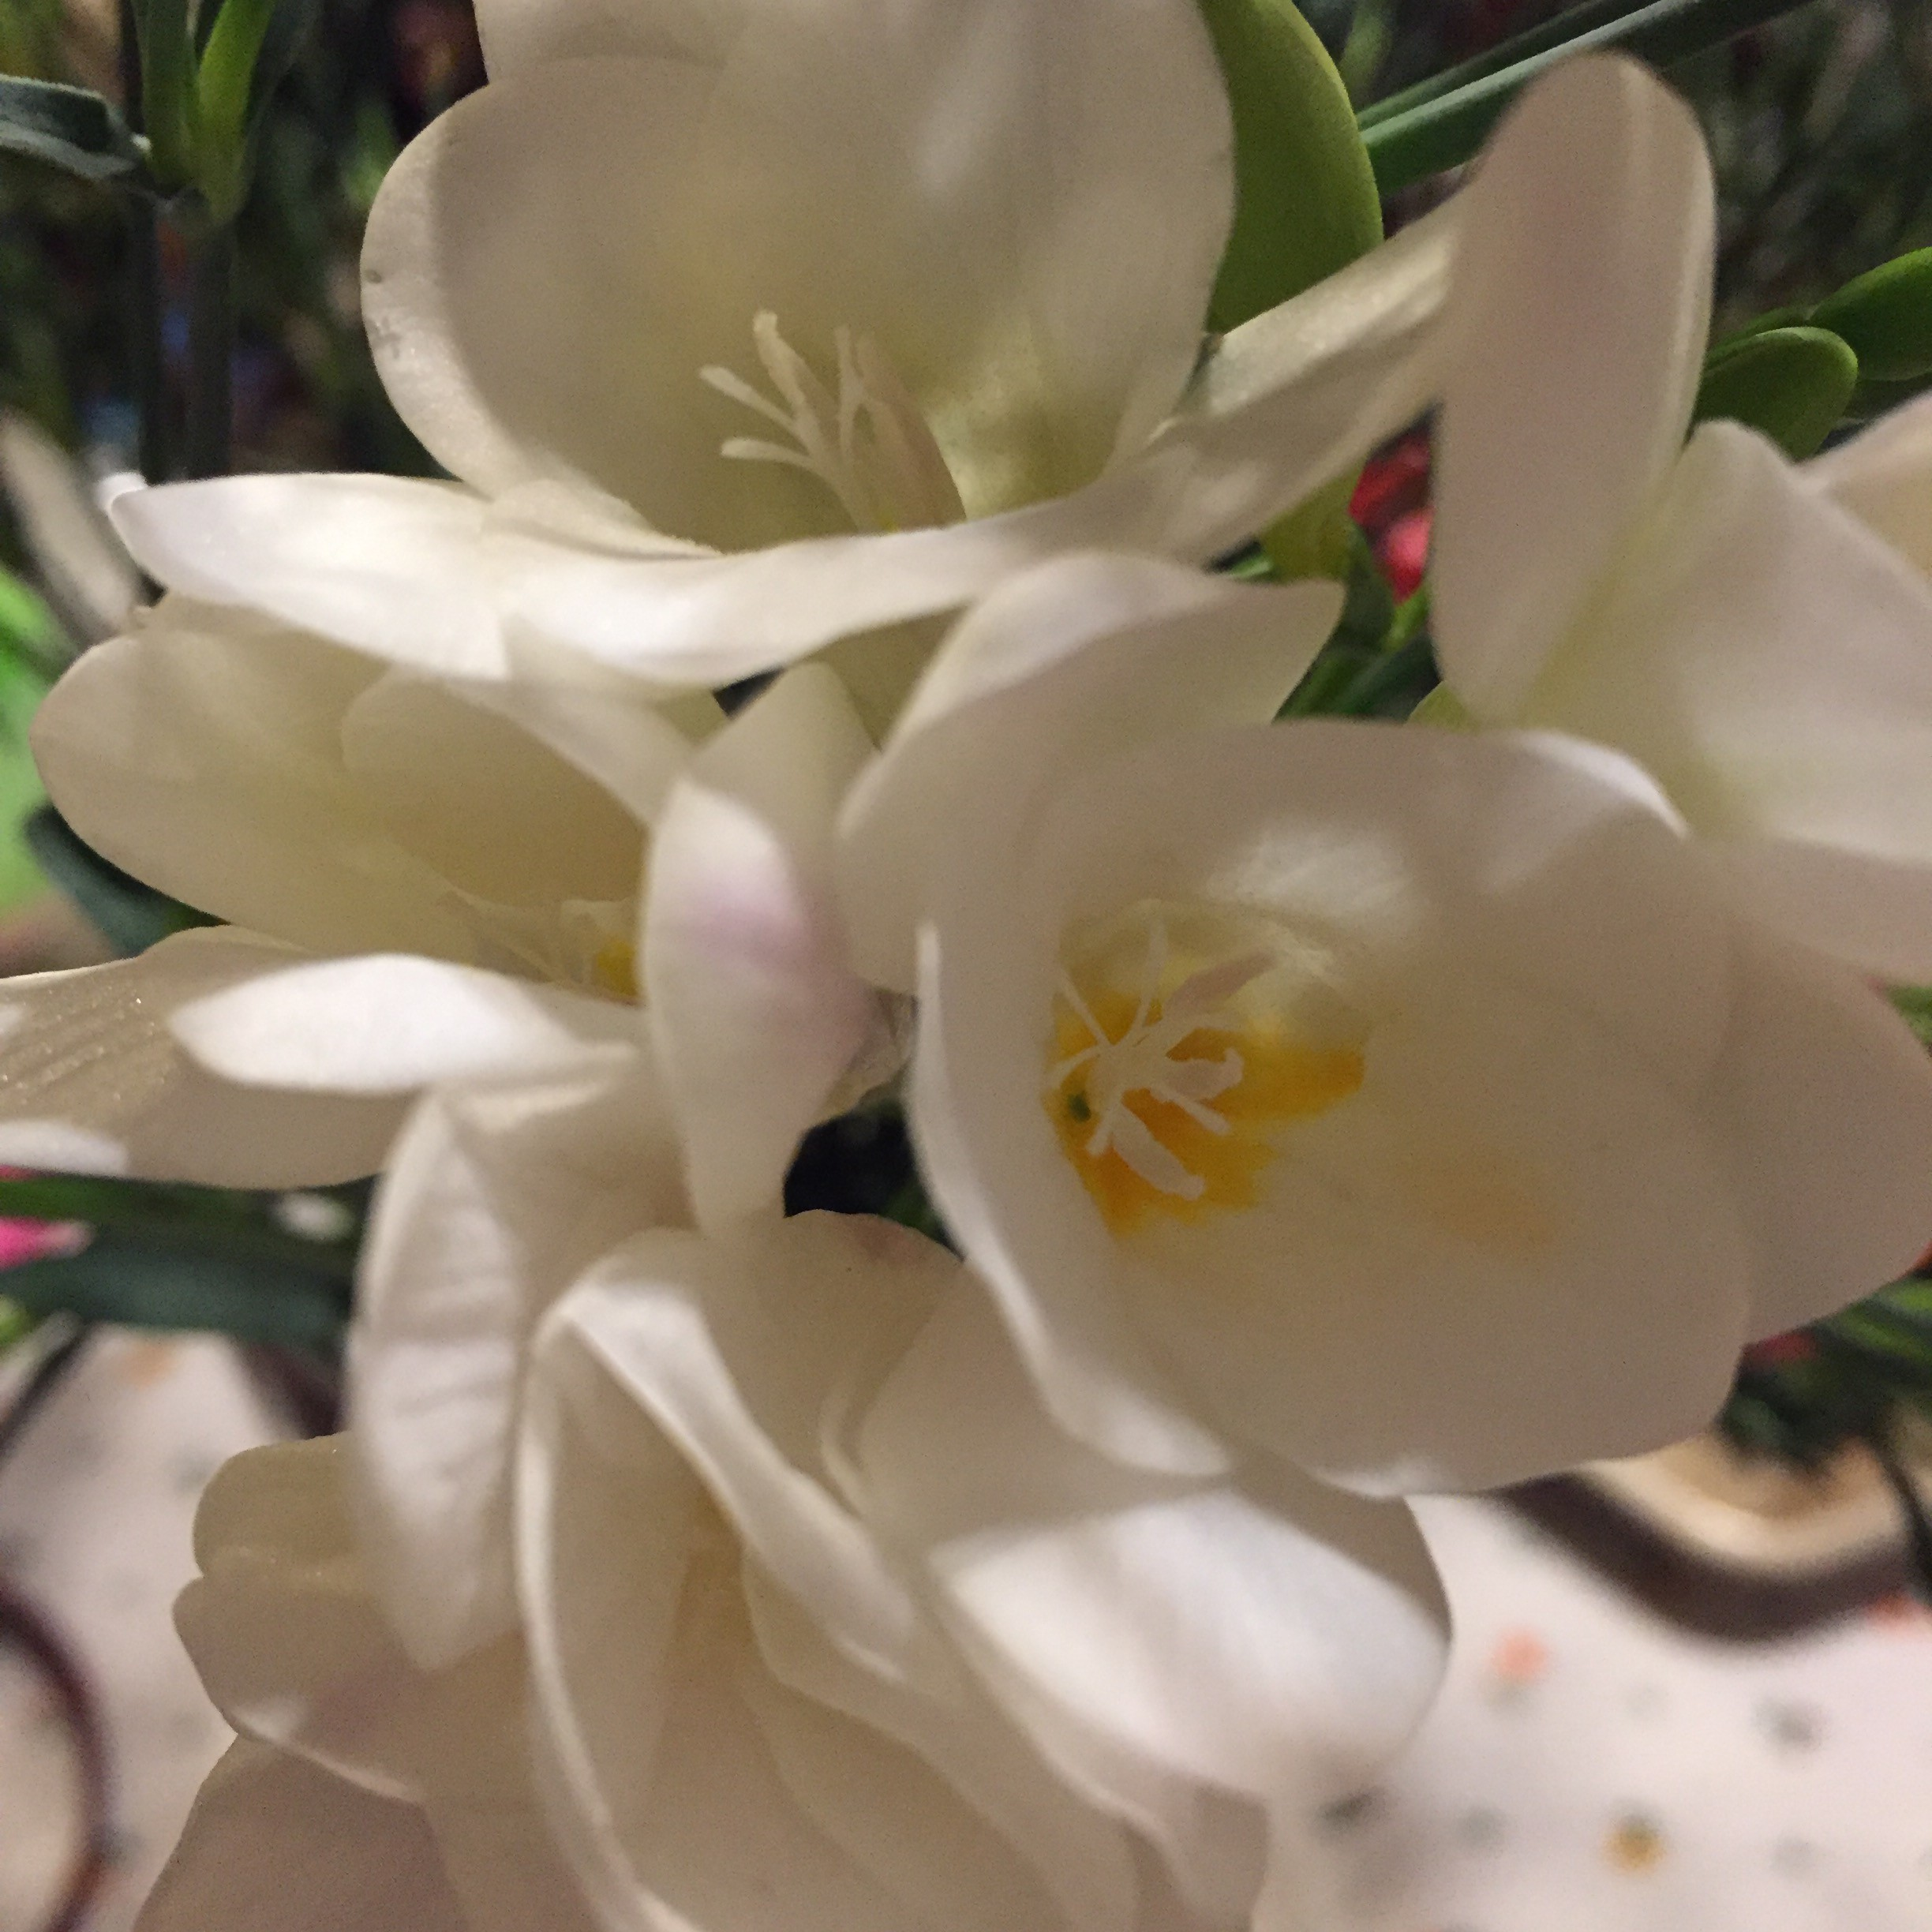 New Flower April 2 2018 White Flower Mama Cormier